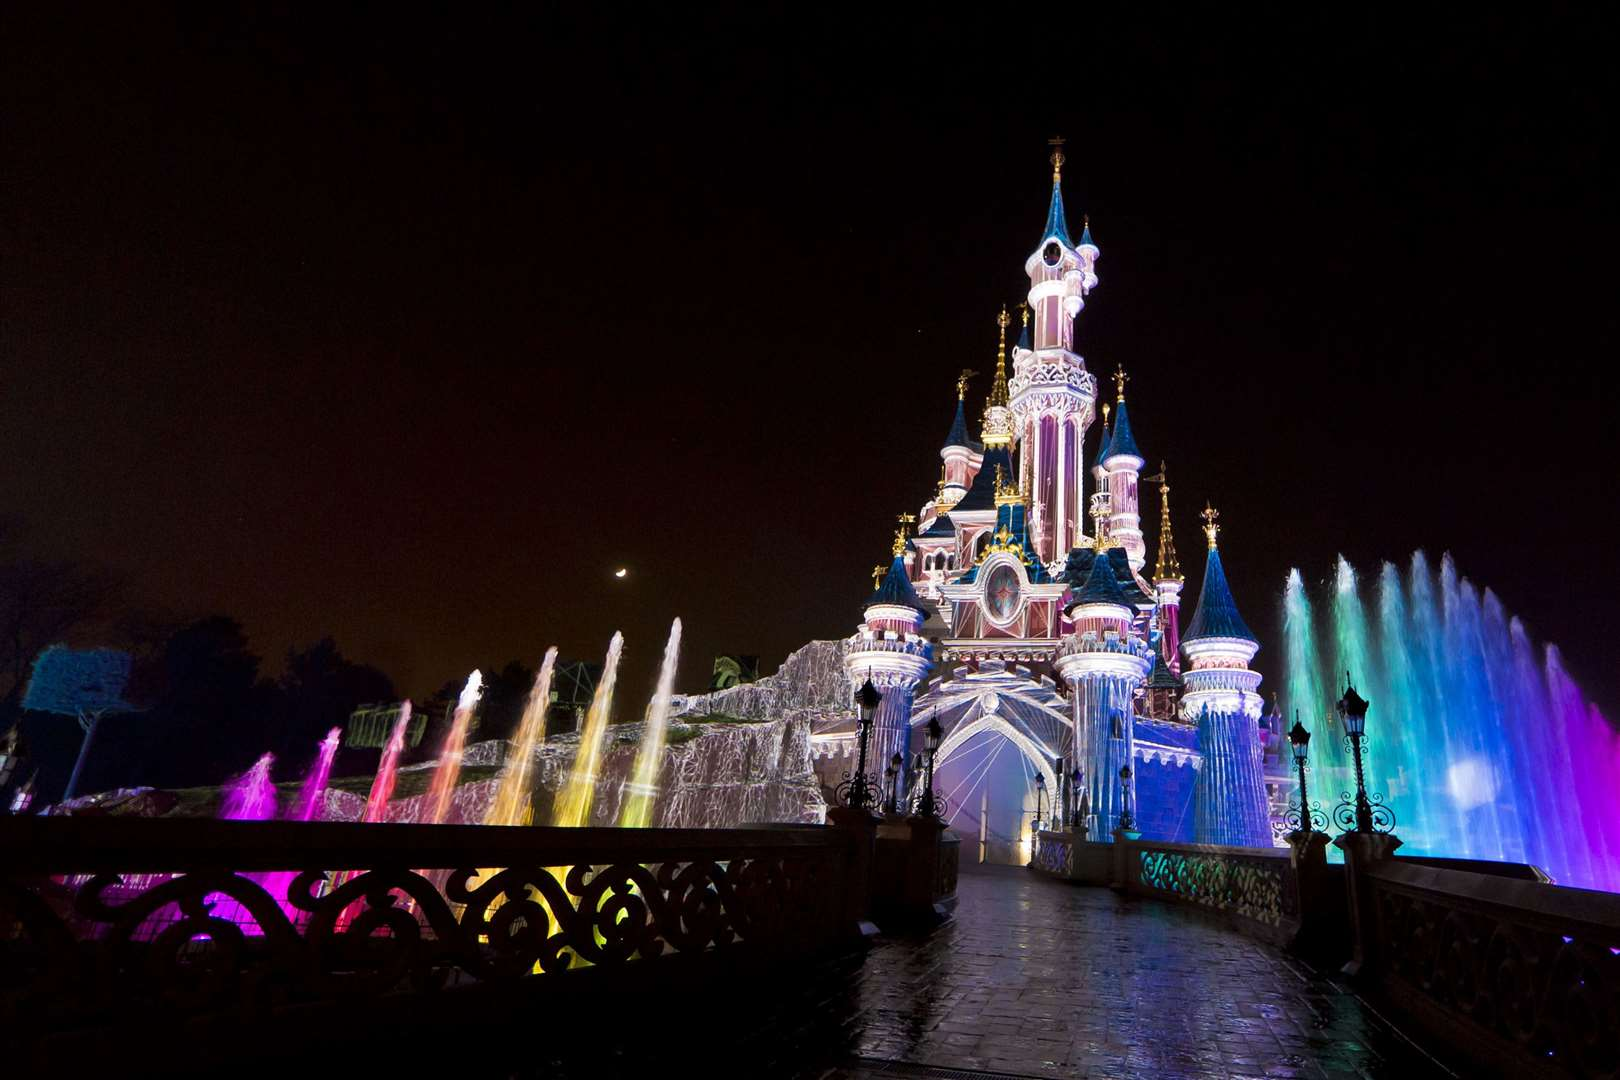 PY won plaudits for turning around the fortunes of Disneyland Paris - or Euro Disney as it was then known